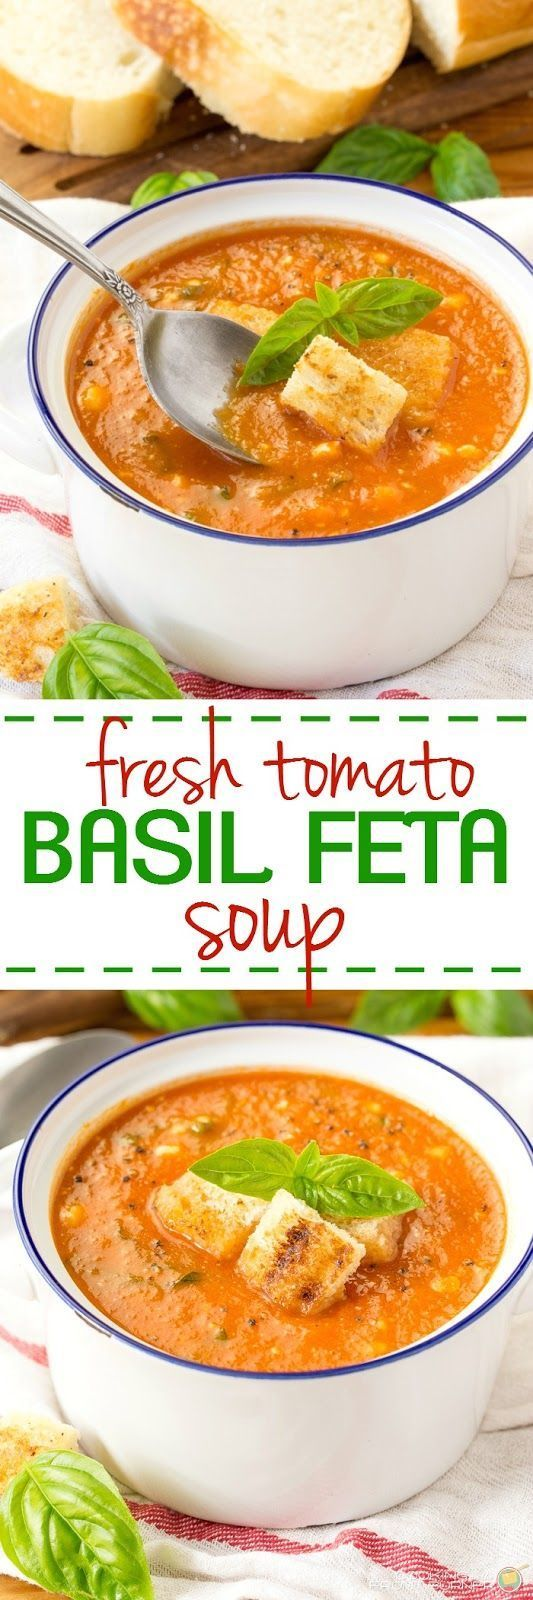 This fresh tomato soup is kicked up a notch with fresh basil and feta cheese and dairy free! Easy to make and delicious!!